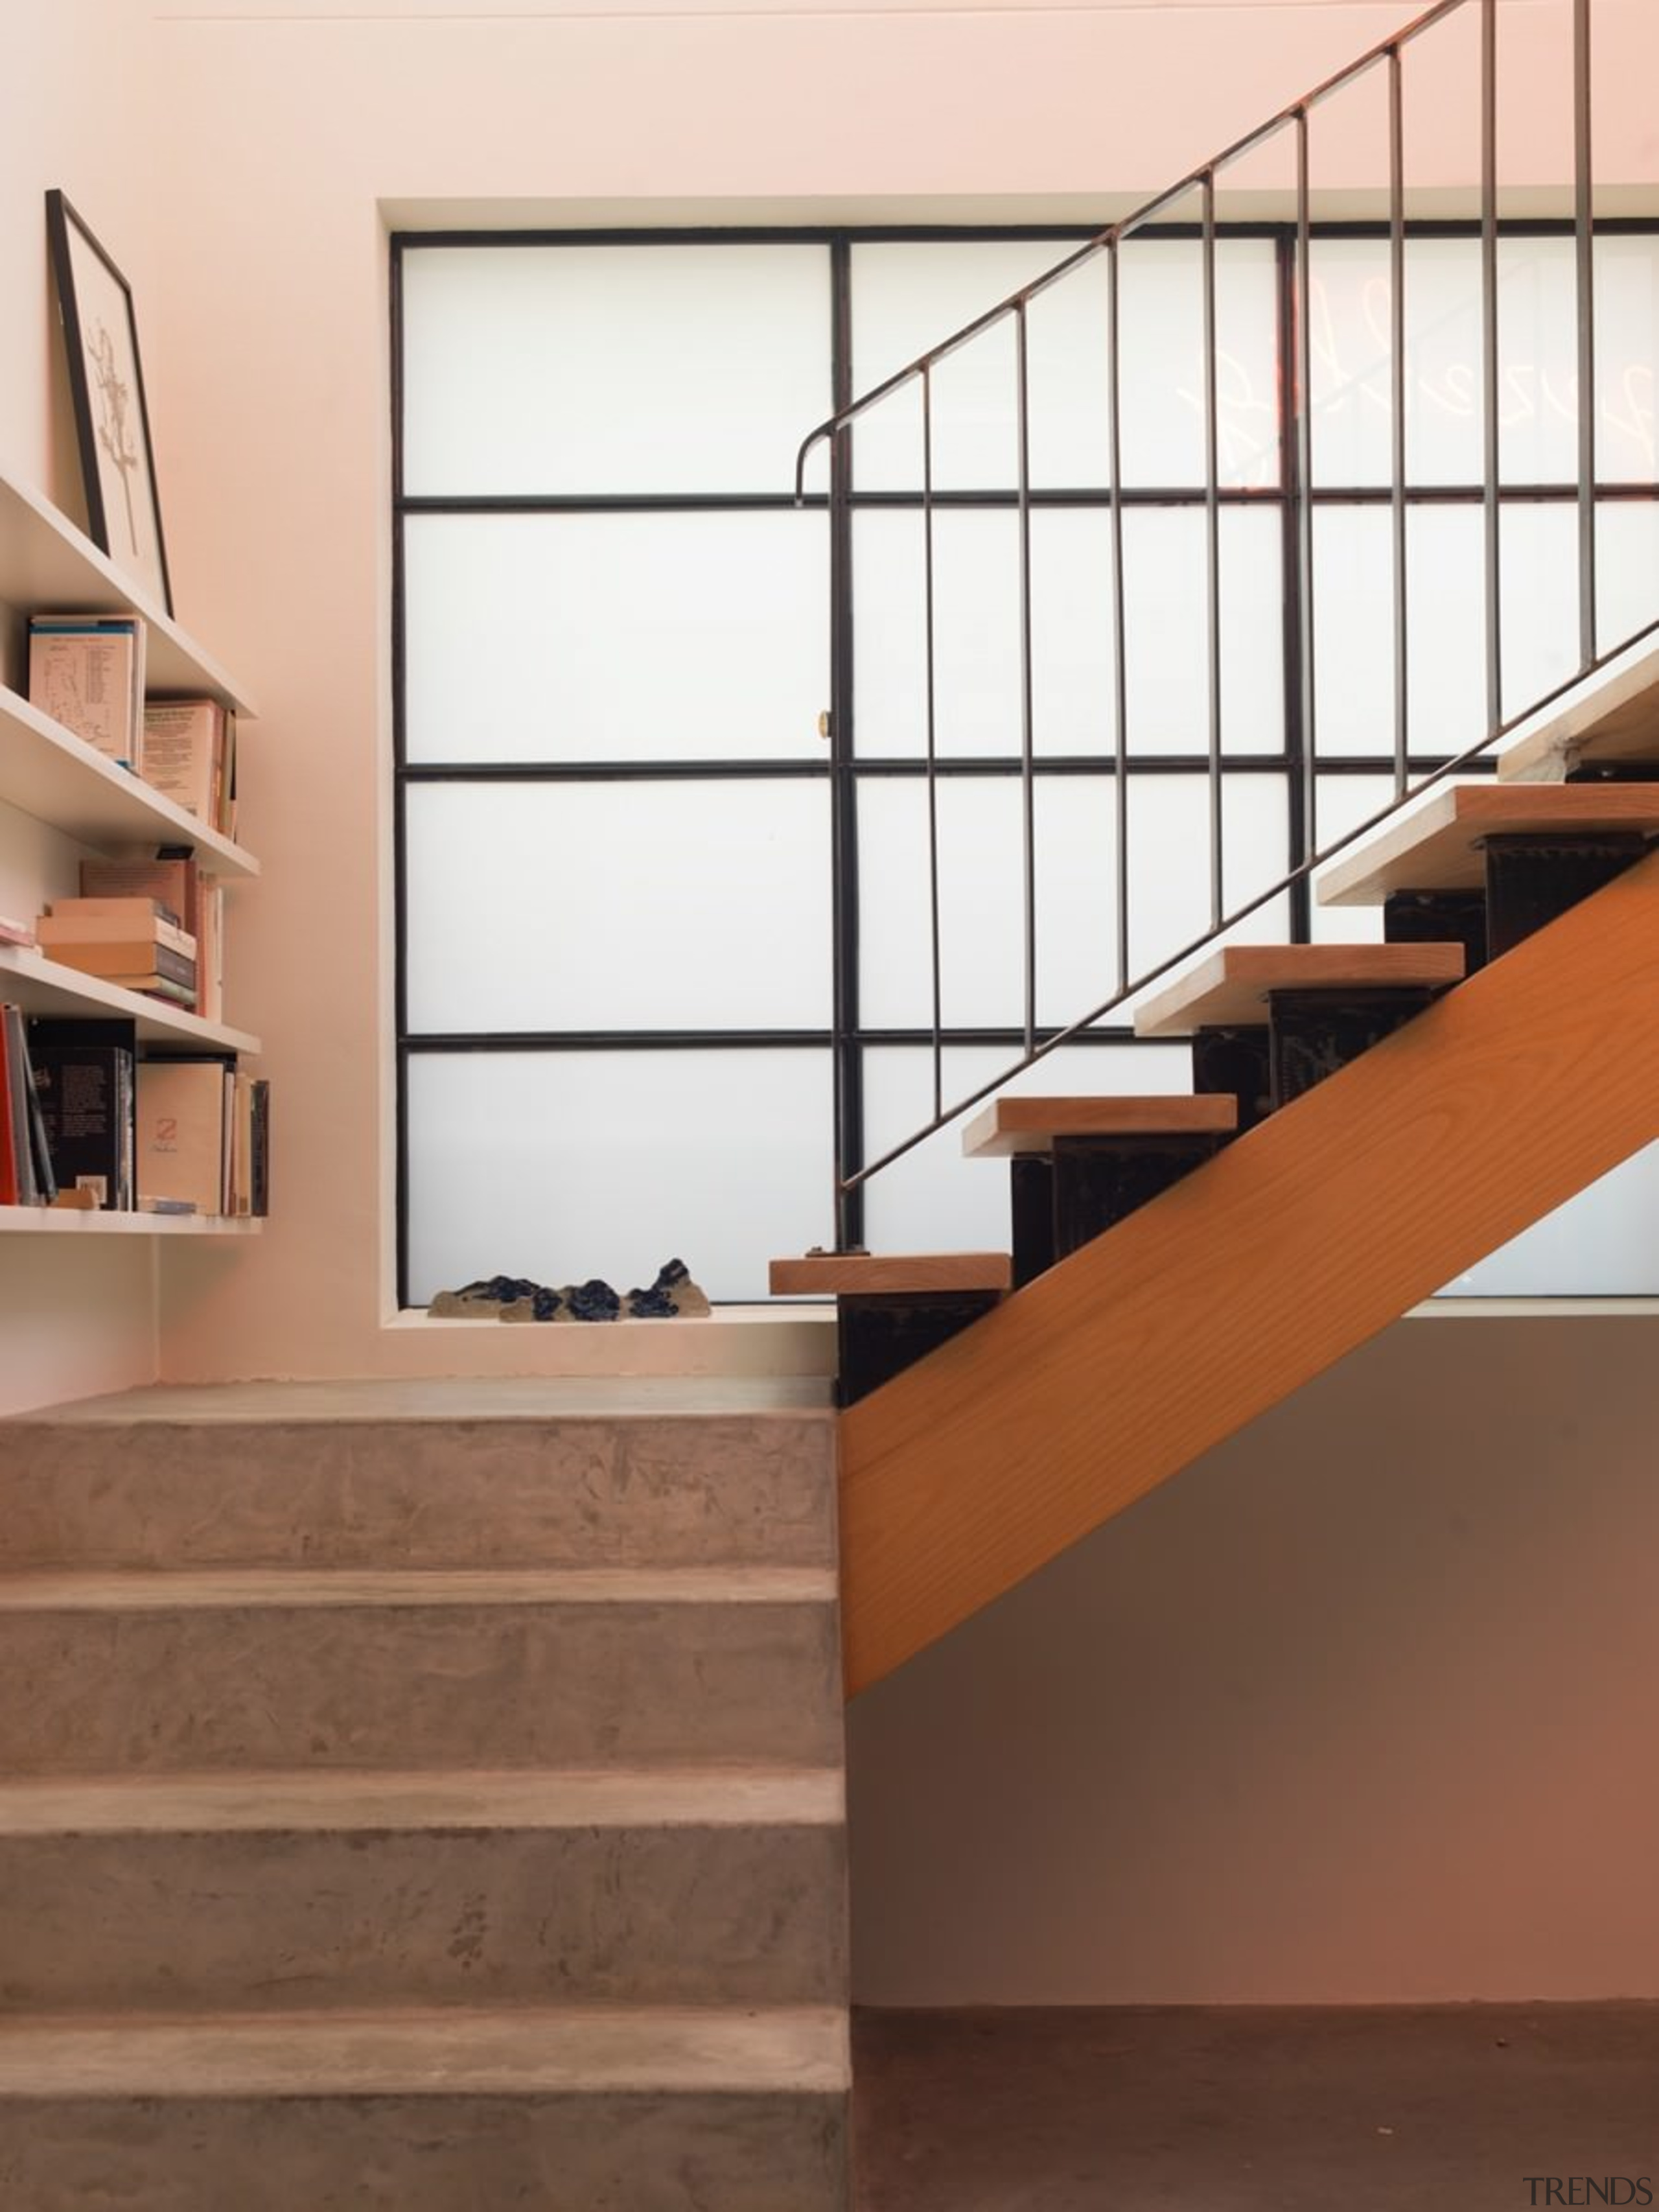 Concrete steps rise to meet wood - Concrete architecture, floor, flooring, glass, handrail, hardwood, interior design, laminate flooring, product design, shelf, shelving, stairs, wood, wood flooring, brown, white